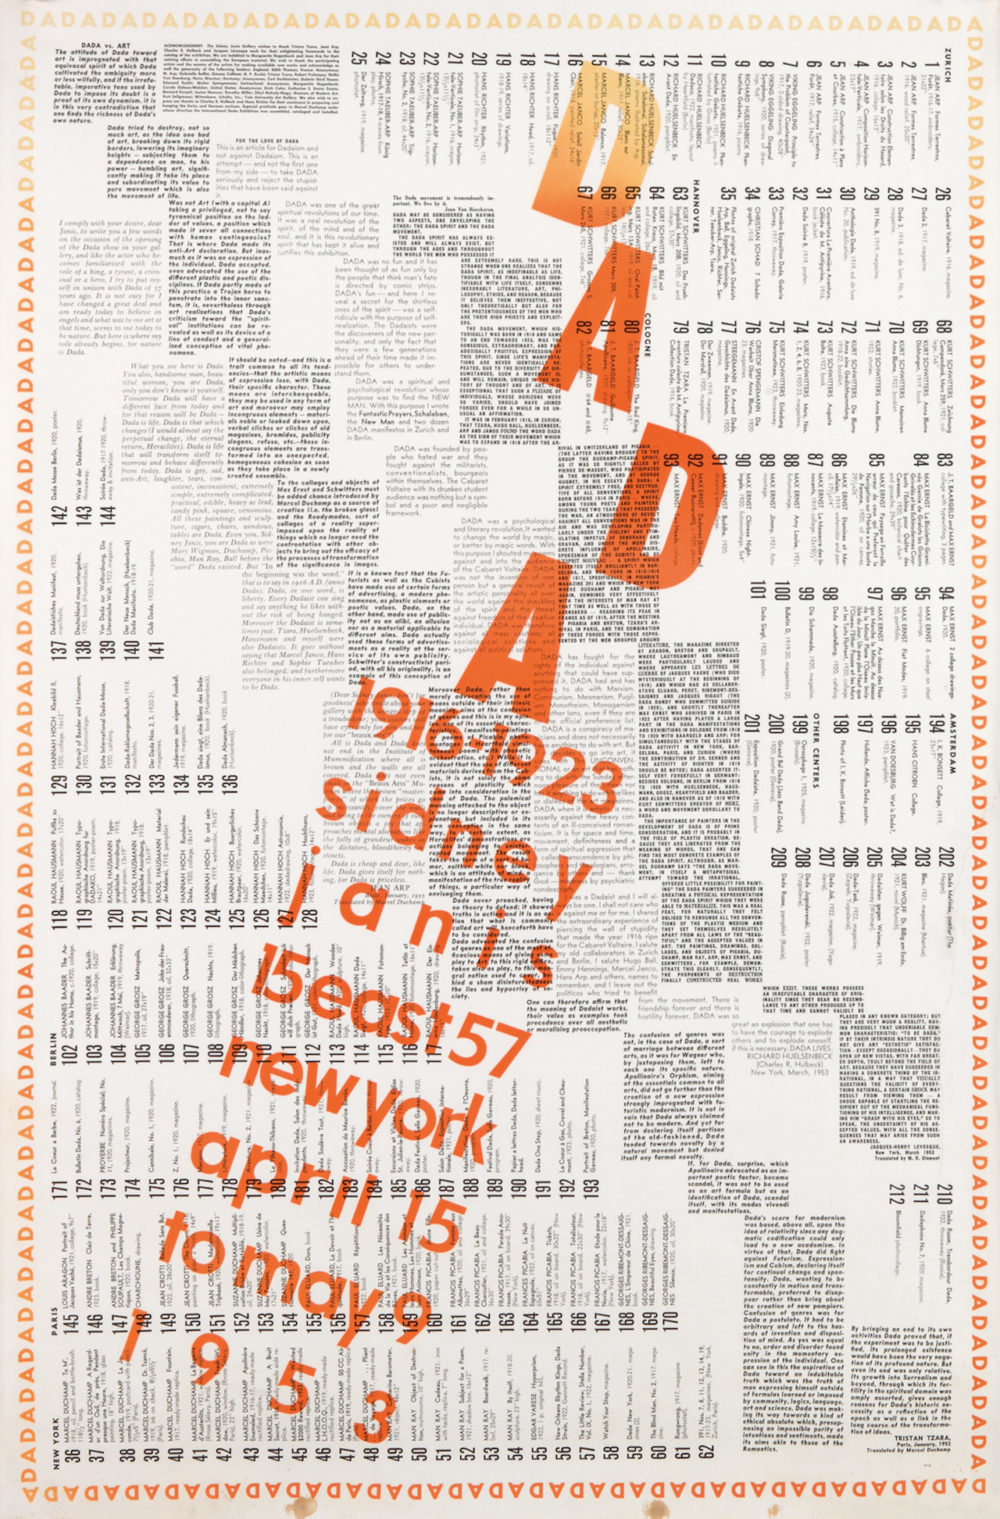 Front page of Dada catalogue with experimental typography